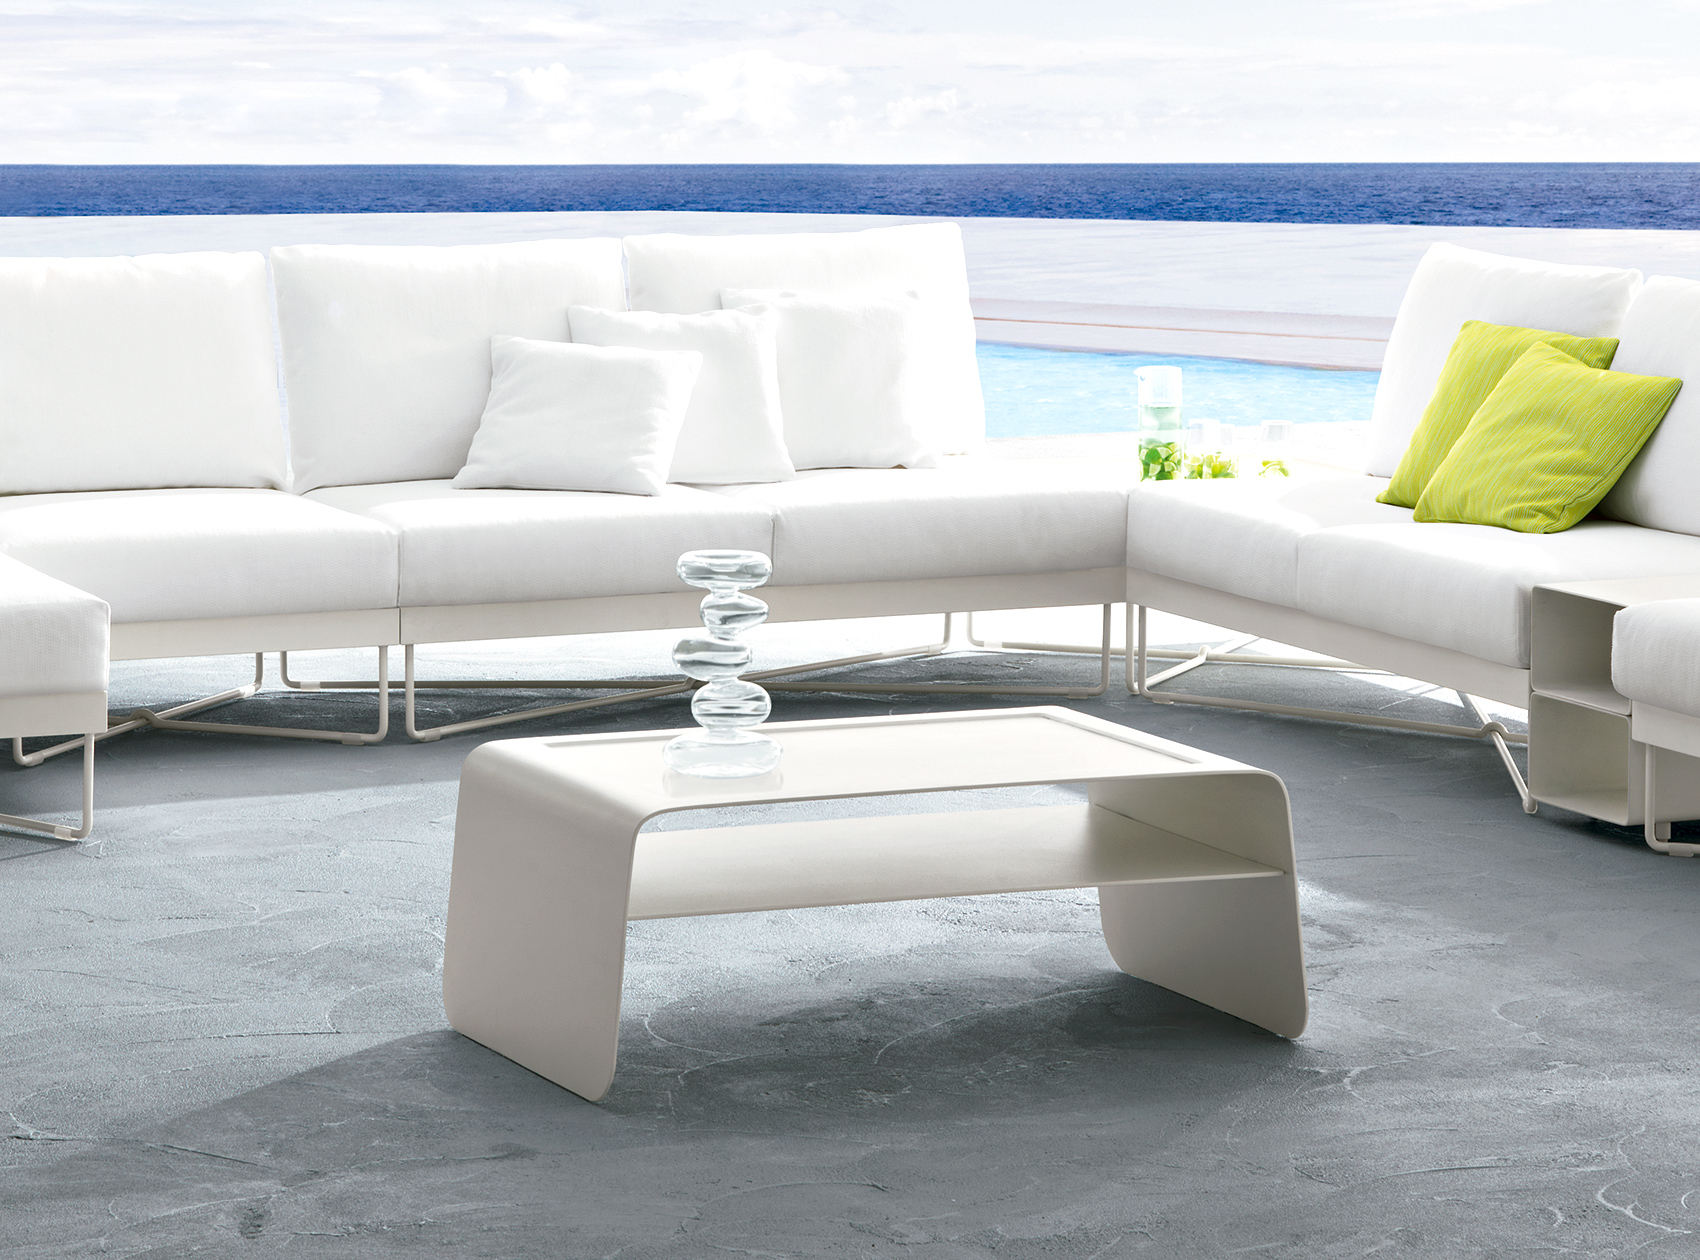 Peachy Coral Reef Coffee Table Inzonedesignstudio Interior Chair Design Inzonedesignstudiocom